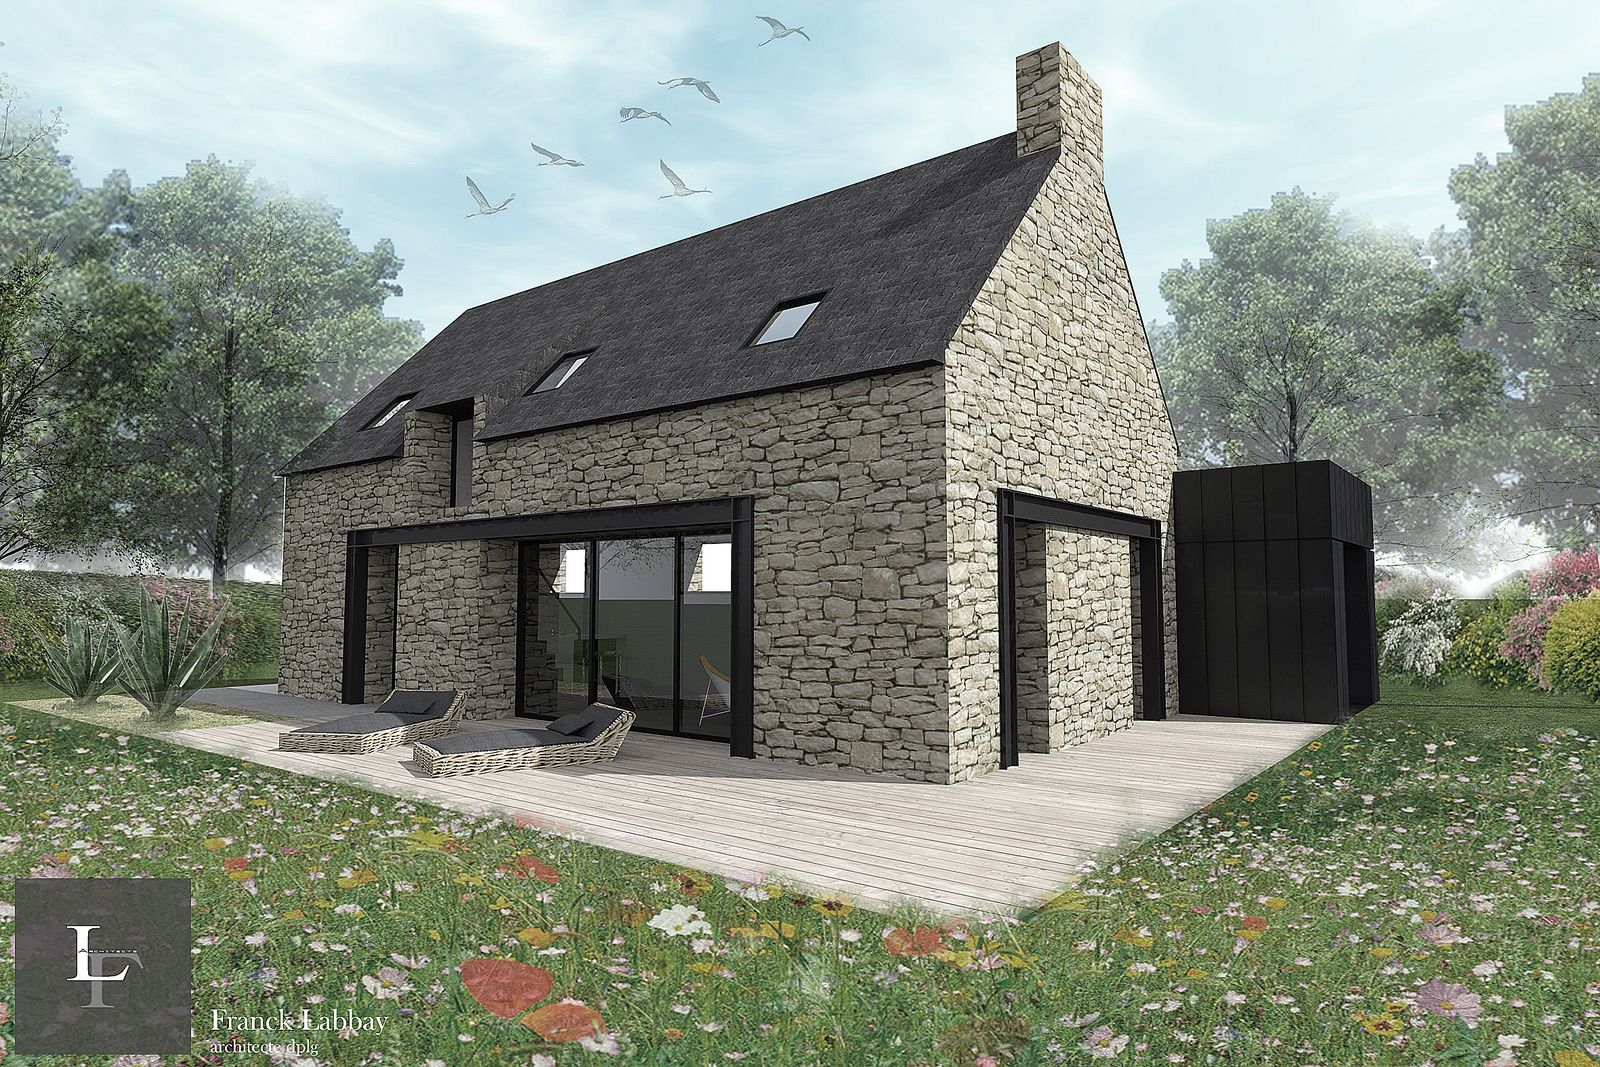 Maison j r novation d 39 une grange plouhinec morbihan for Recours architecte extension garage